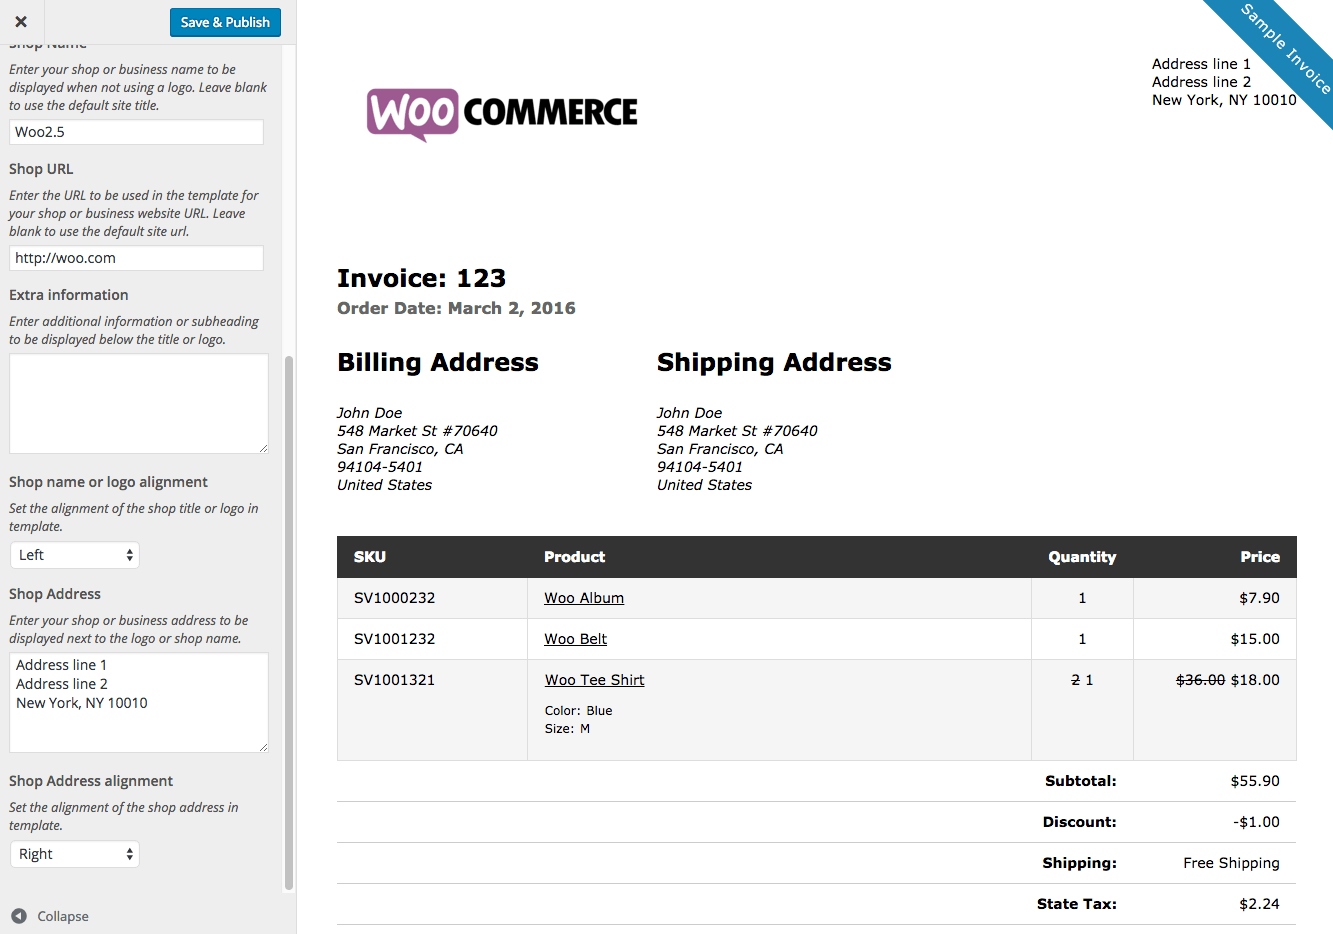 Conservativereviewus  Surprising Woocommerce Print Invoices Amp Packing Lists  Woocommerce Docs With Extraordinary Woocommerce Print Invoices  Packing Lists Customizer With Comely My Invoice Software Also How To Find Dealer Invoice Price For A Car In Addition Free Invoice Templets And Commercial Invoice For Shipping As Well As  Nissan Rogue Invoice Price Additionally Invoice Excel Template Free From Docswoocommercecom With Conservativereviewus  Extraordinary Woocommerce Print Invoices Amp Packing Lists  Woocommerce Docs With Comely Woocommerce Print Invoices  Packing Lists Customizer And Surprising My Invoice Software Also How To Find Dealer Invoice Price For A Car In Addition Free Invoice Templets From Docswoocommercecom